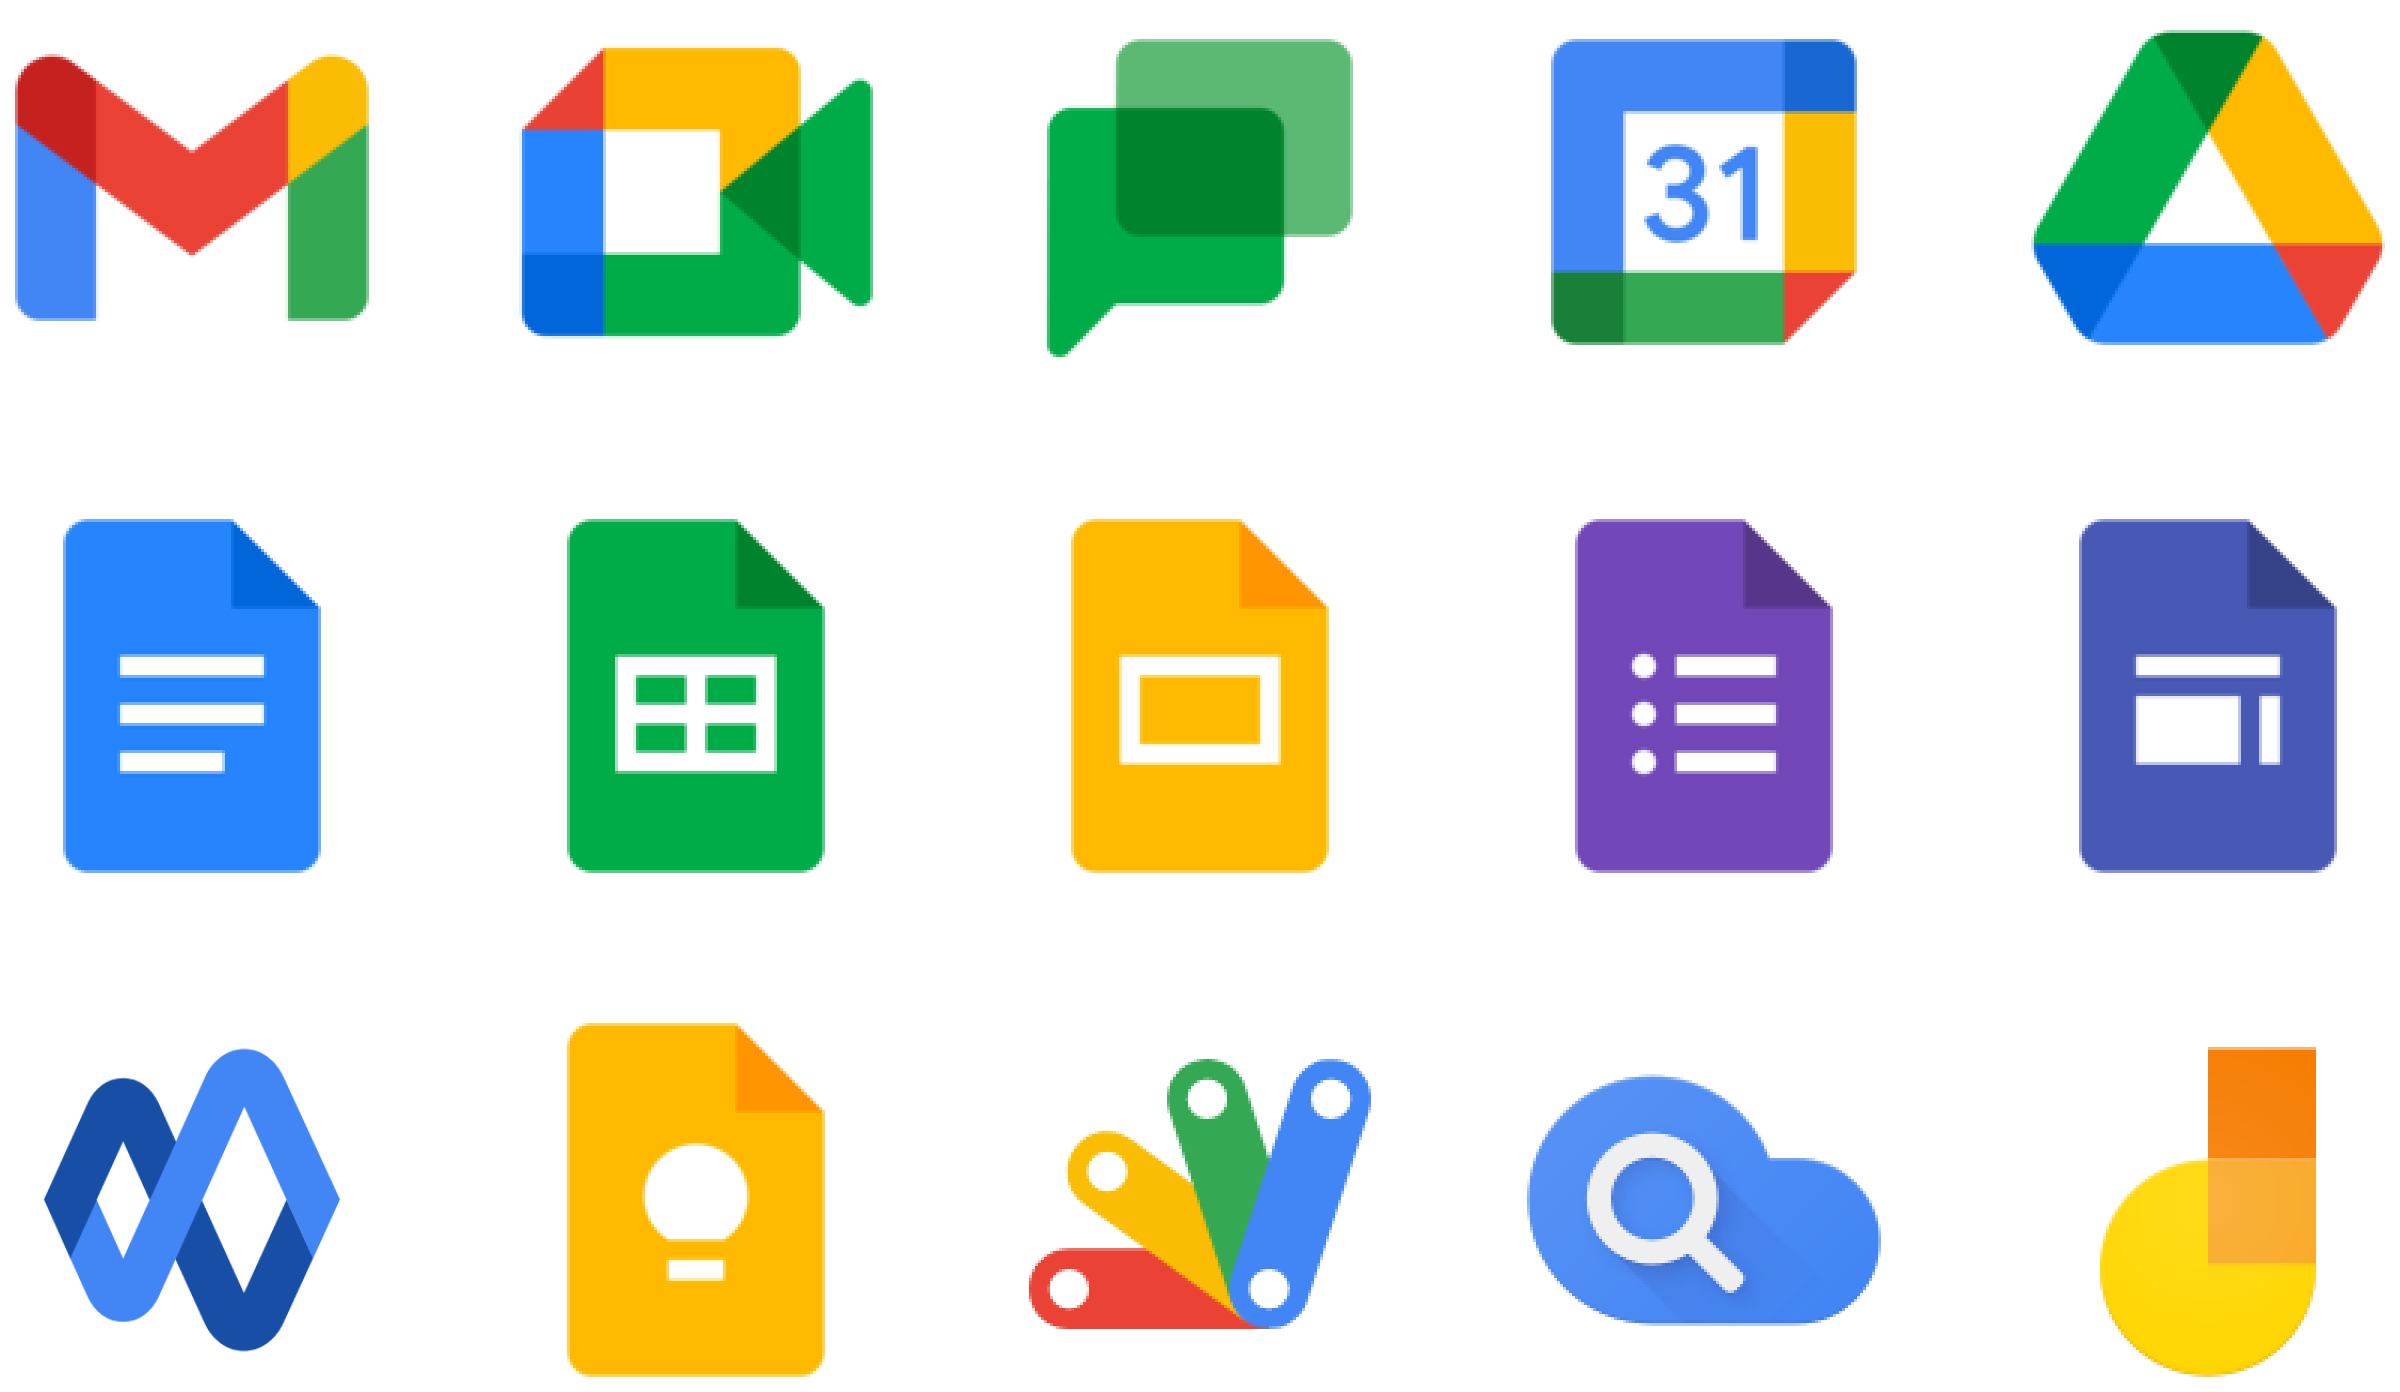 Revolgy - Google Workspace products